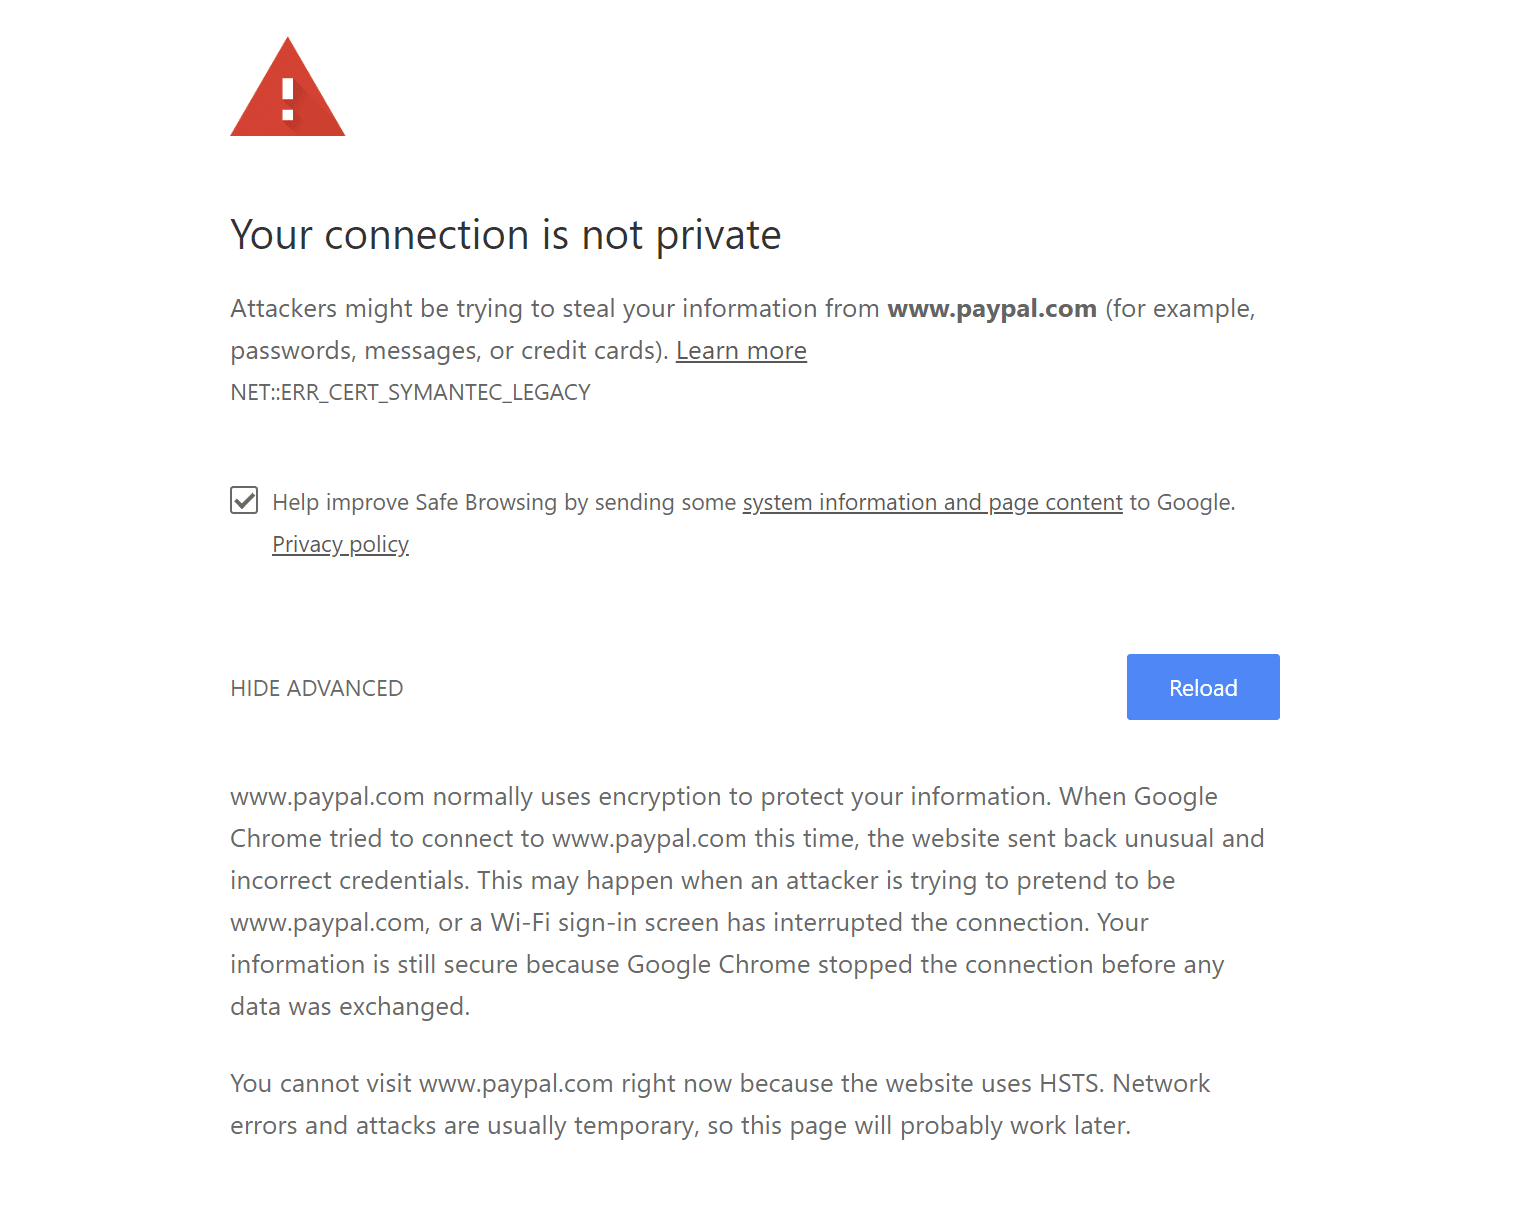 Your connection is not private error in Chrome